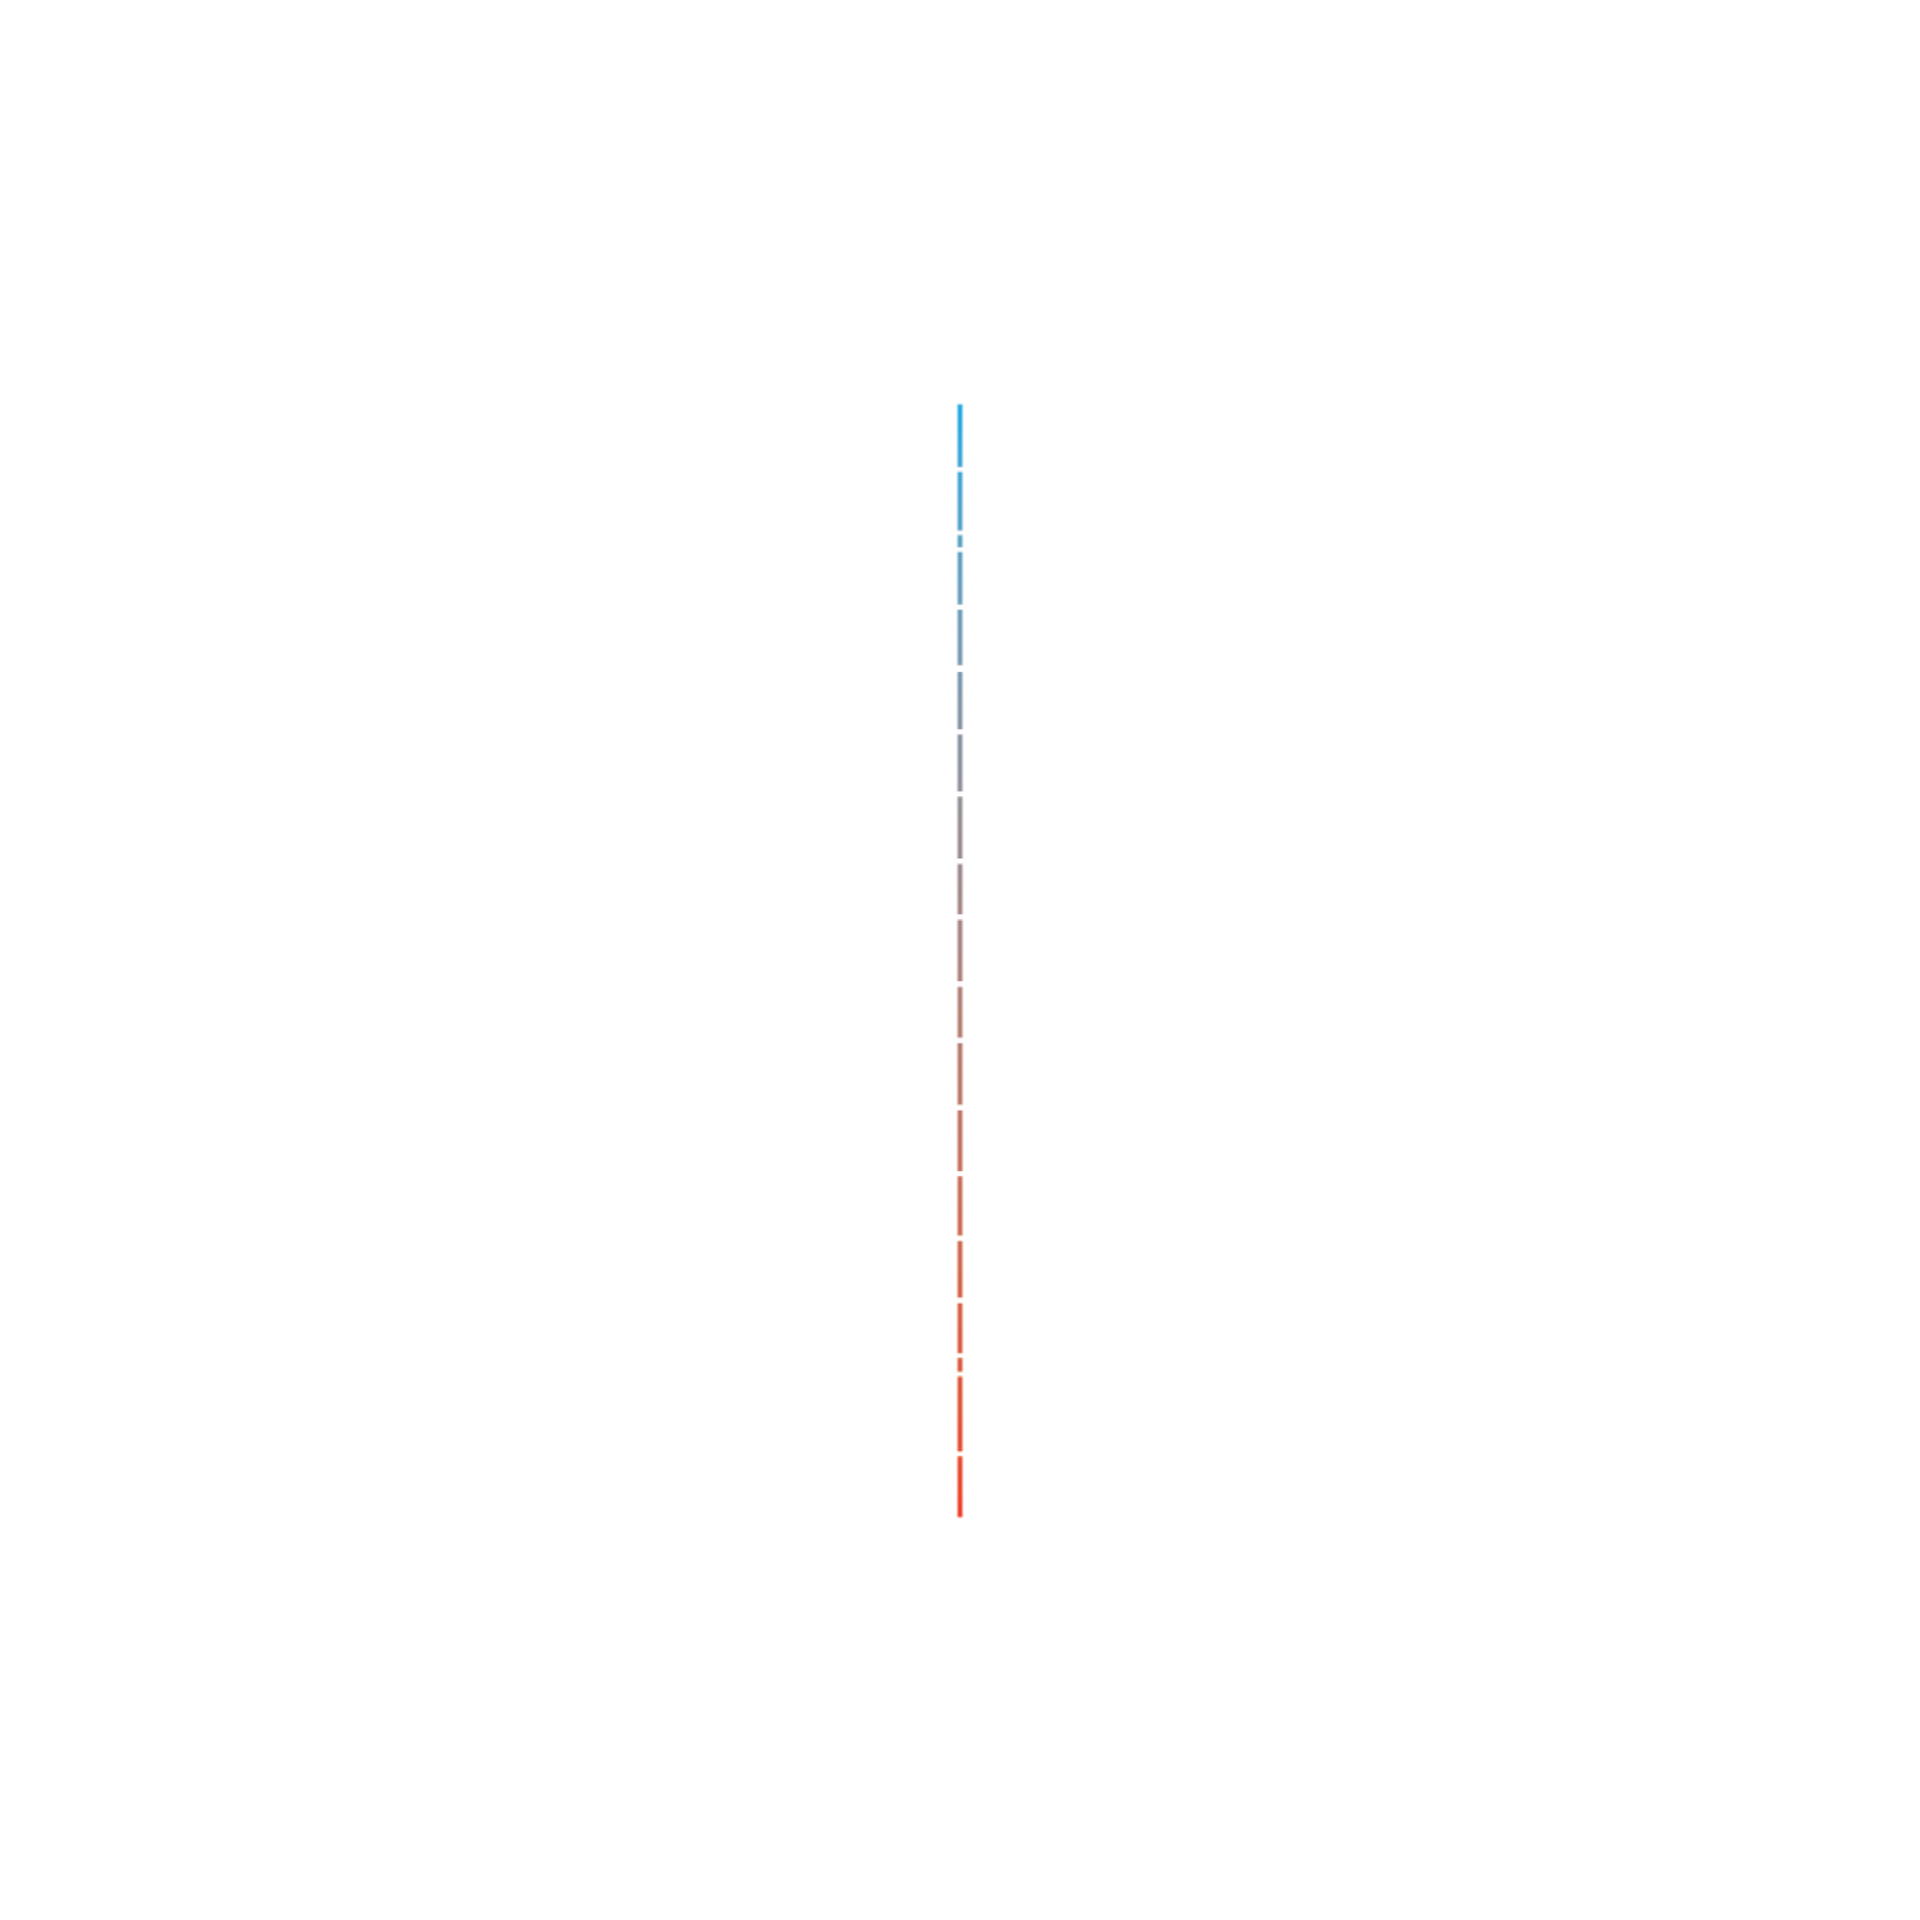 Illustration featuring cylindrical grid with red/blue line showing pressure buildup reduction that encourages healthy movement on black background.